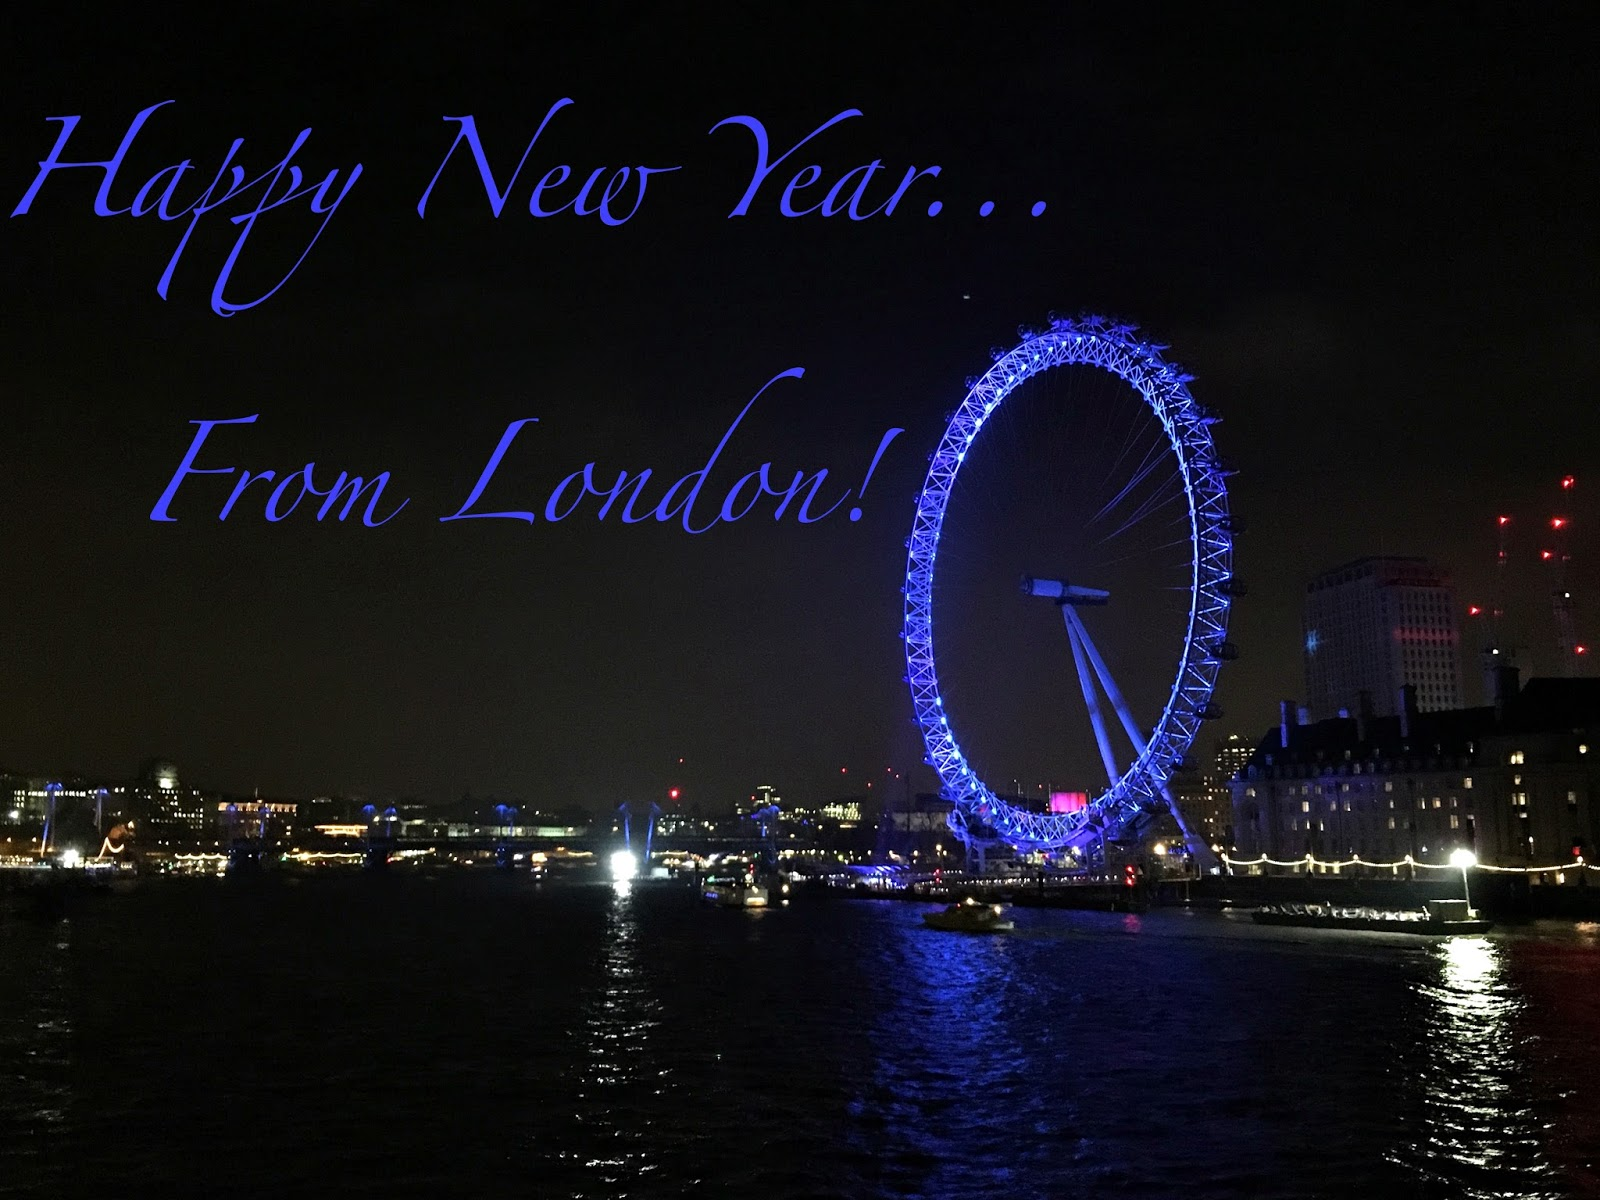 HAPPY NEW YEAR FROM... LONDON!